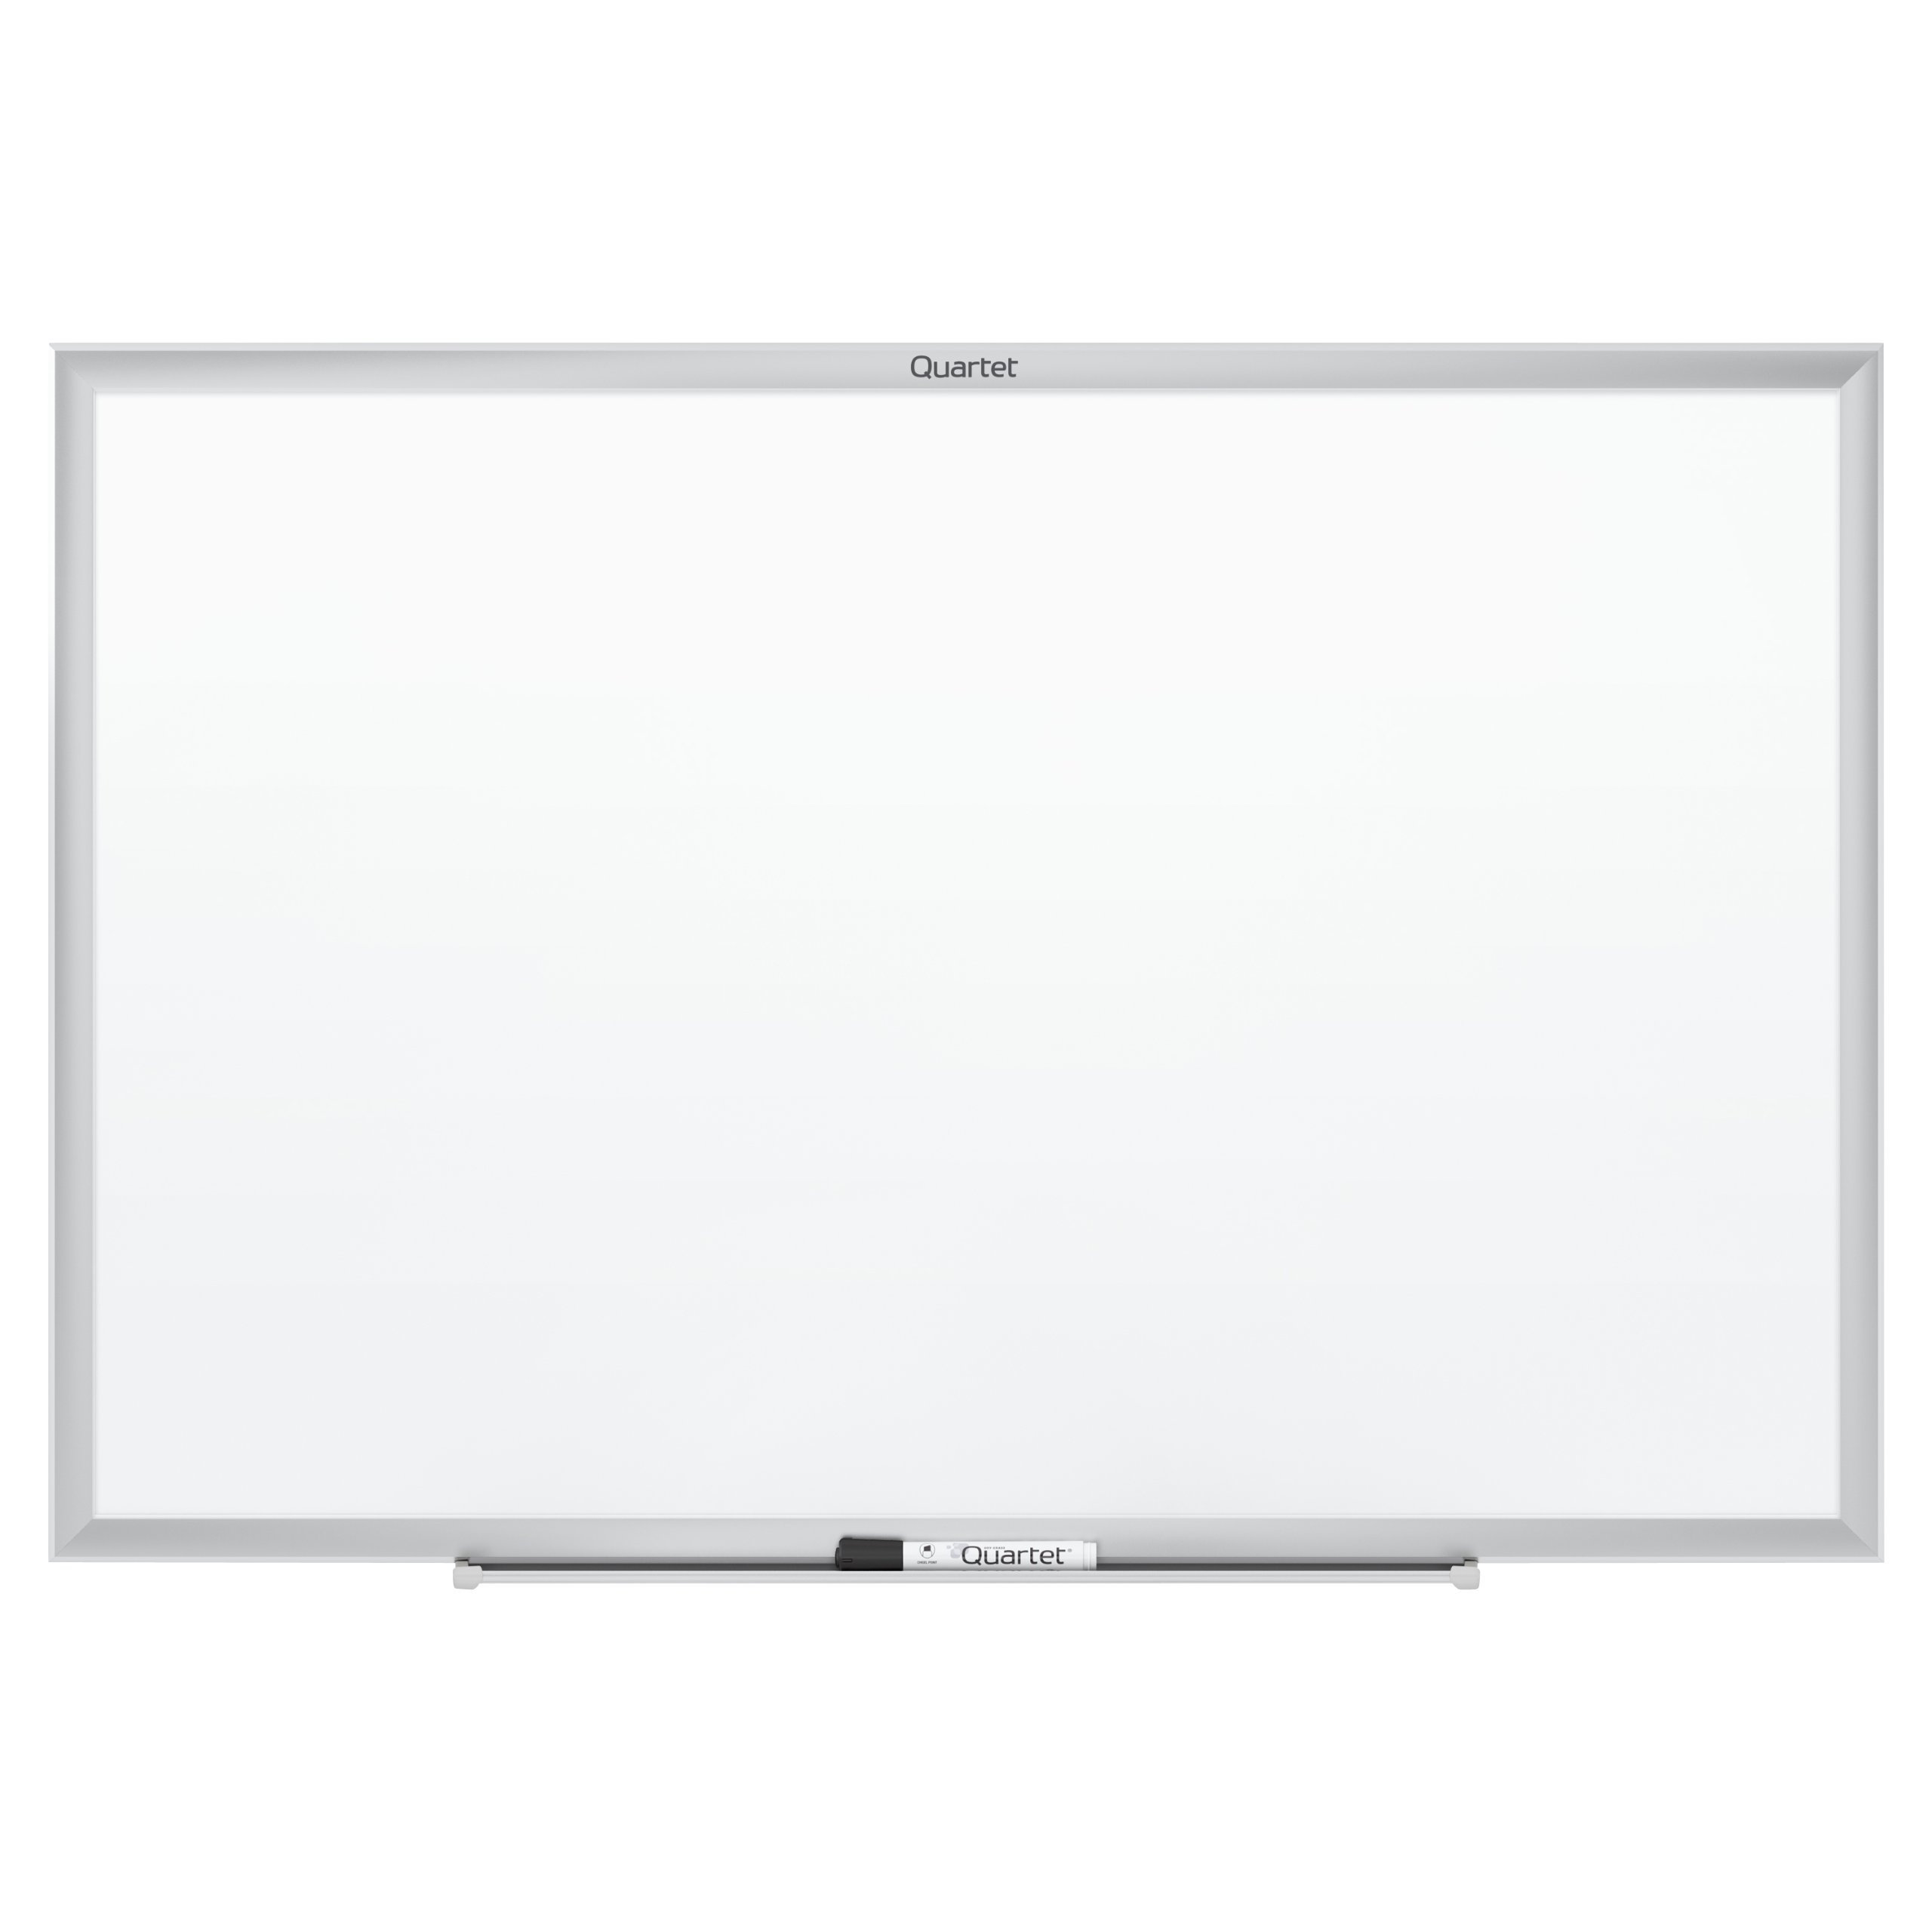 Quartet Dry Erase Board, Whiteboard / White Board, Magnetic, 8' x 4', Silver Aluminum Frame (SM538)